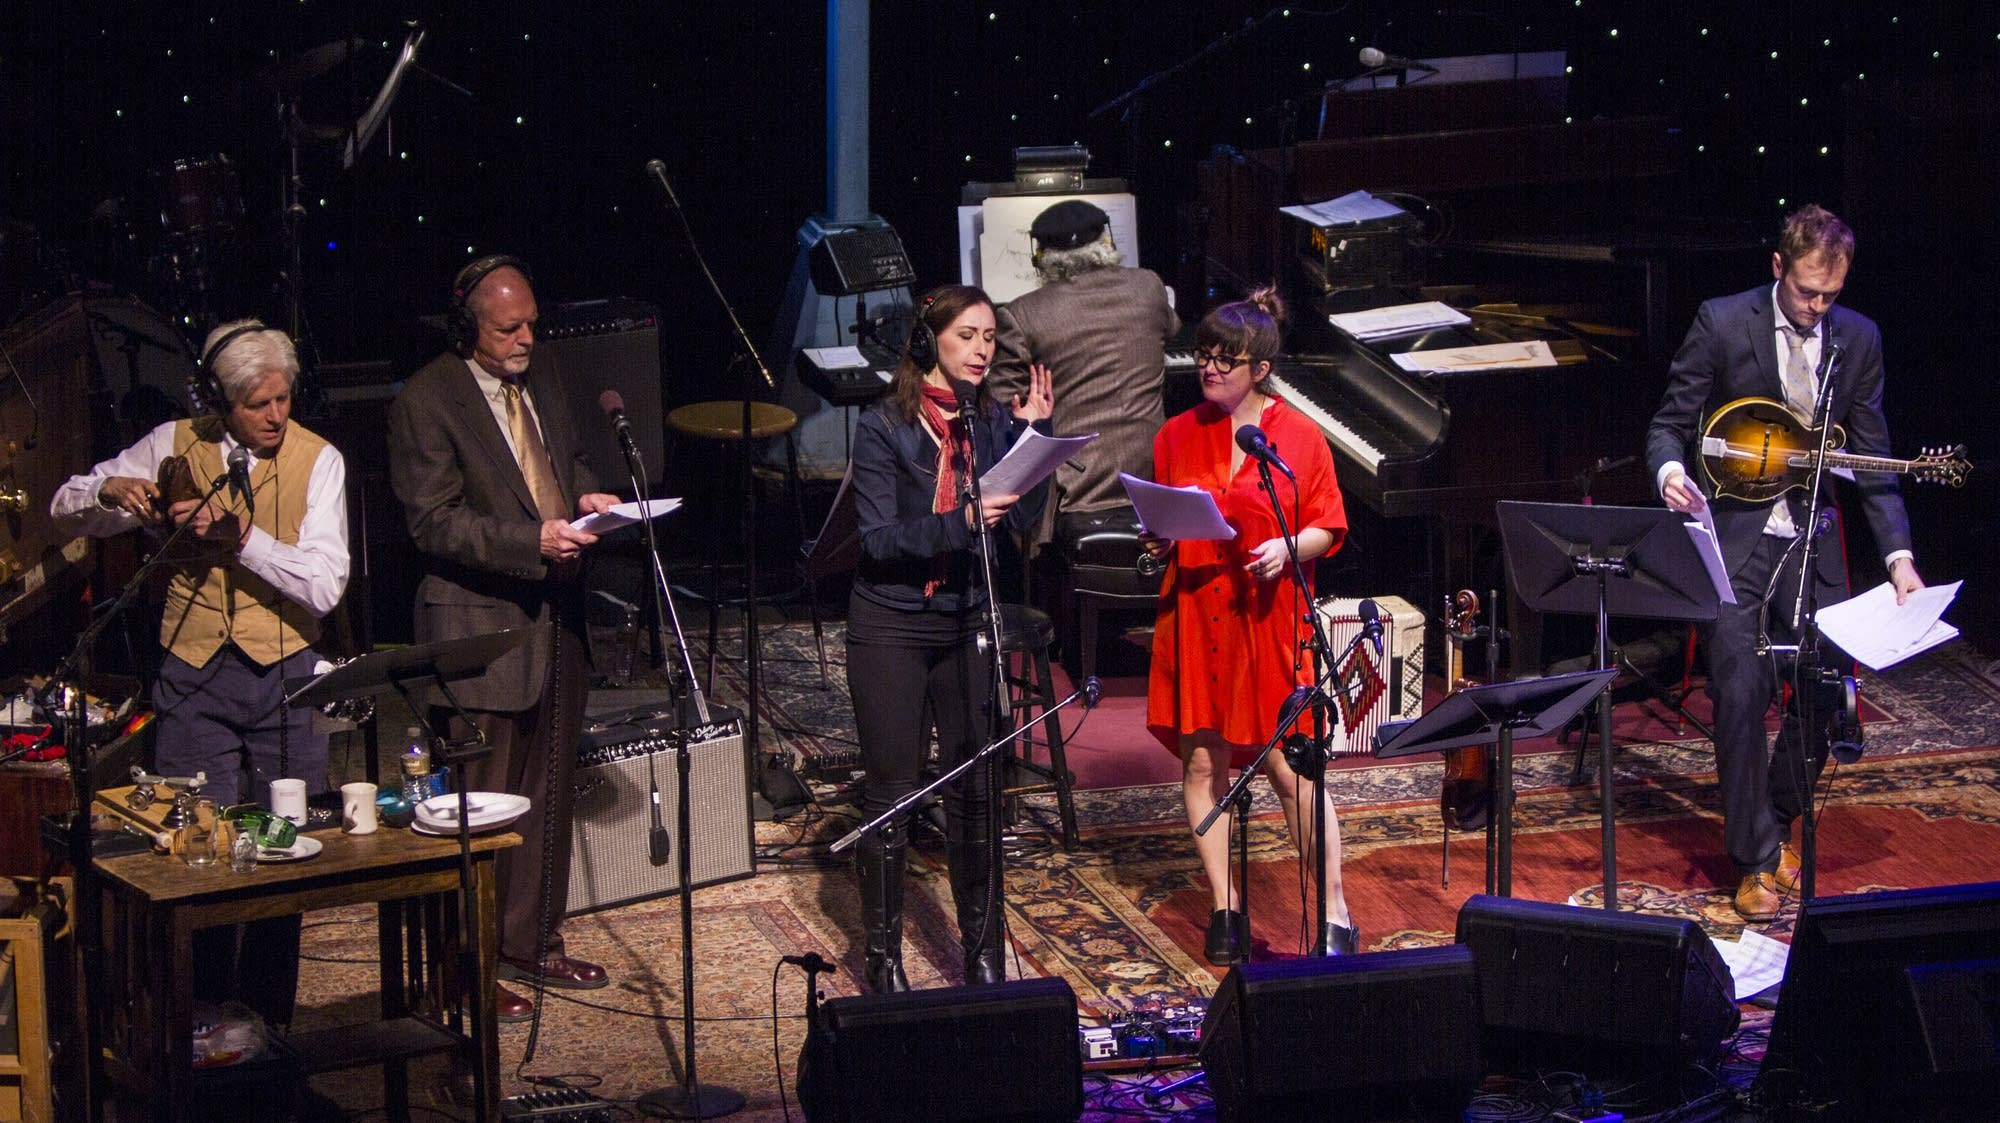 Fred Newman, Tim Russell, Serena Brook, Sara Watkins, and Chris Thile